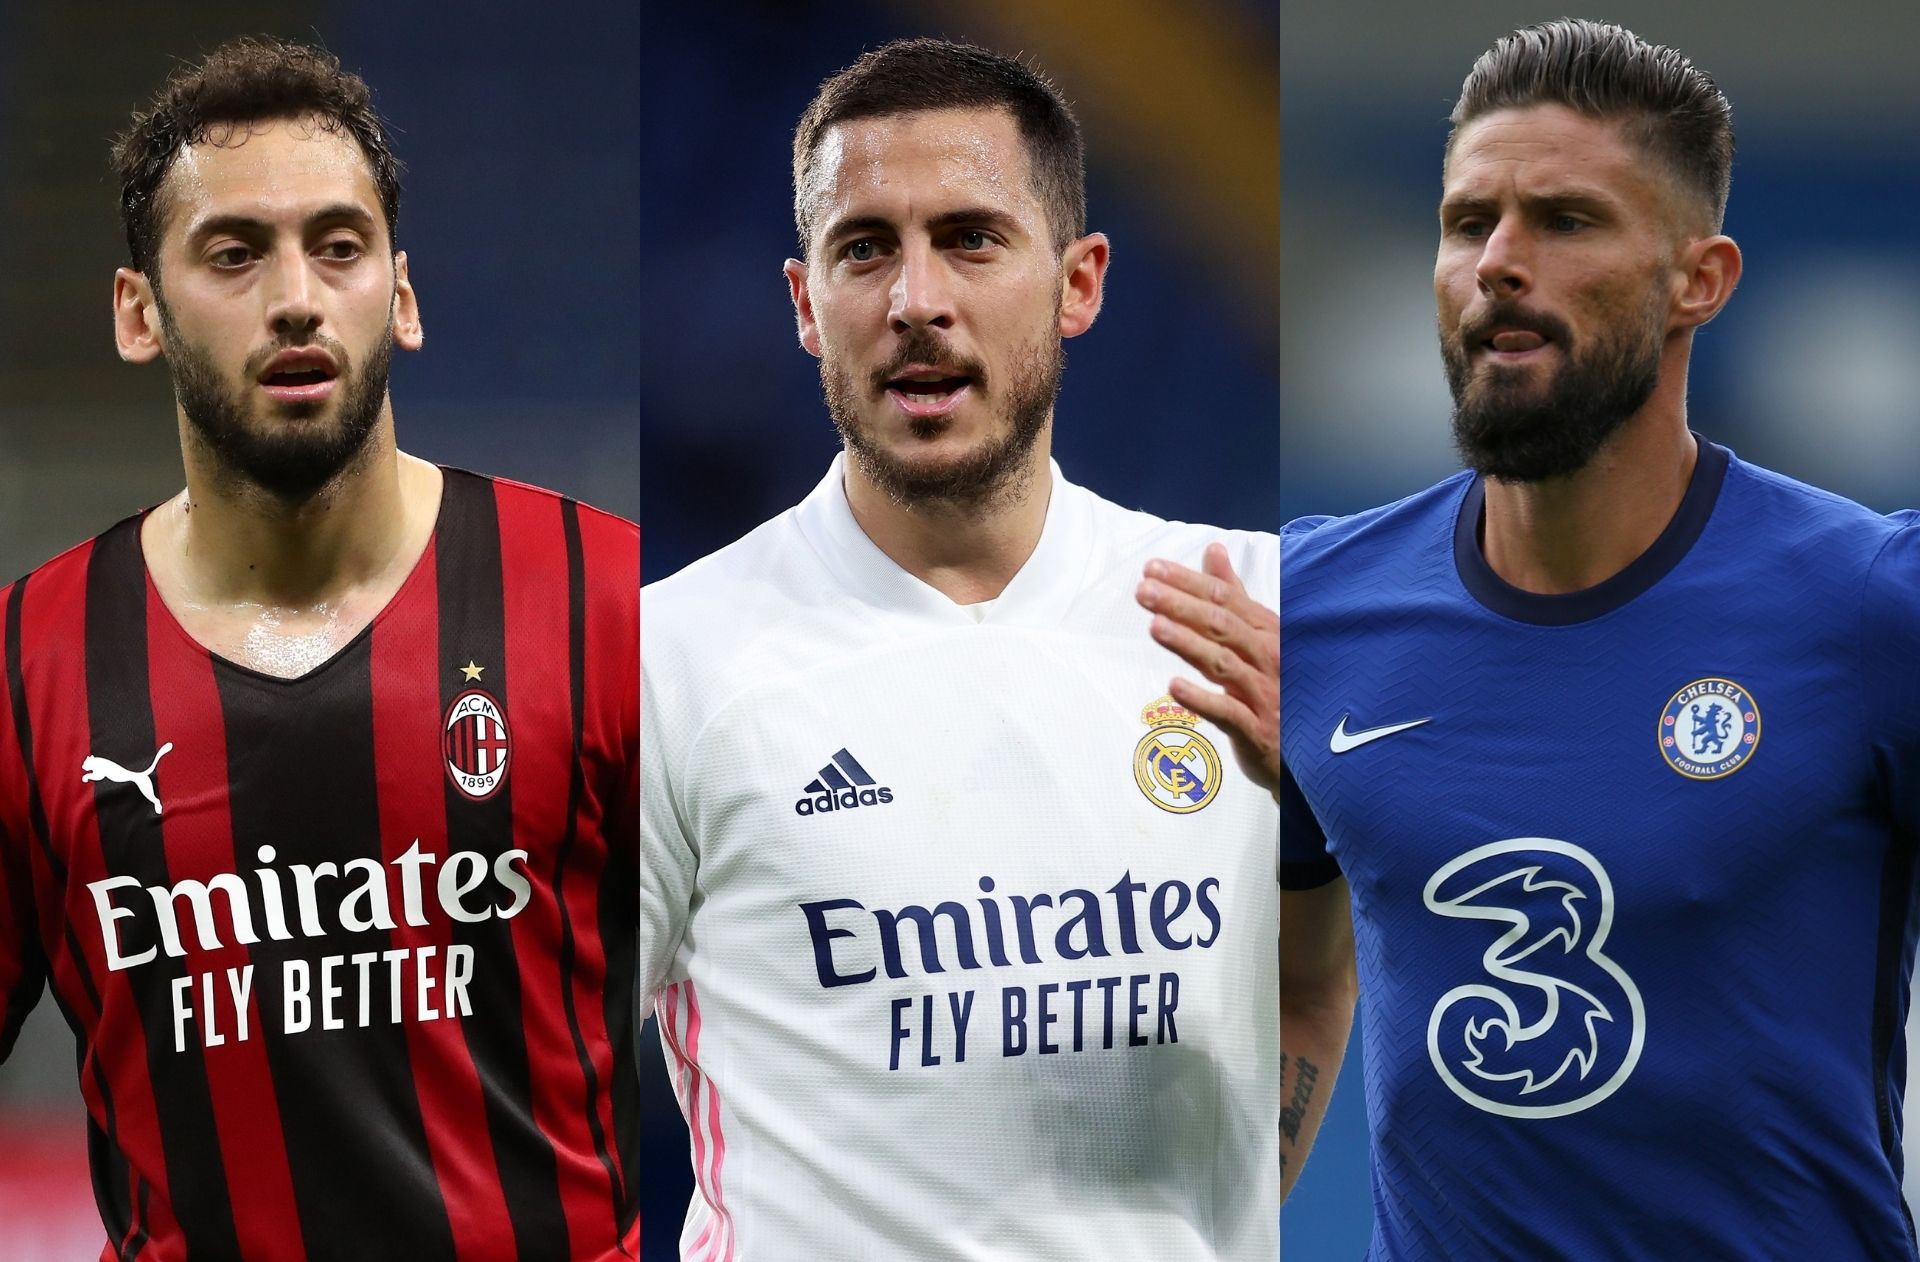 Tuesday's transfer rumors - AC Milan eye deals for 2 Chelsea players